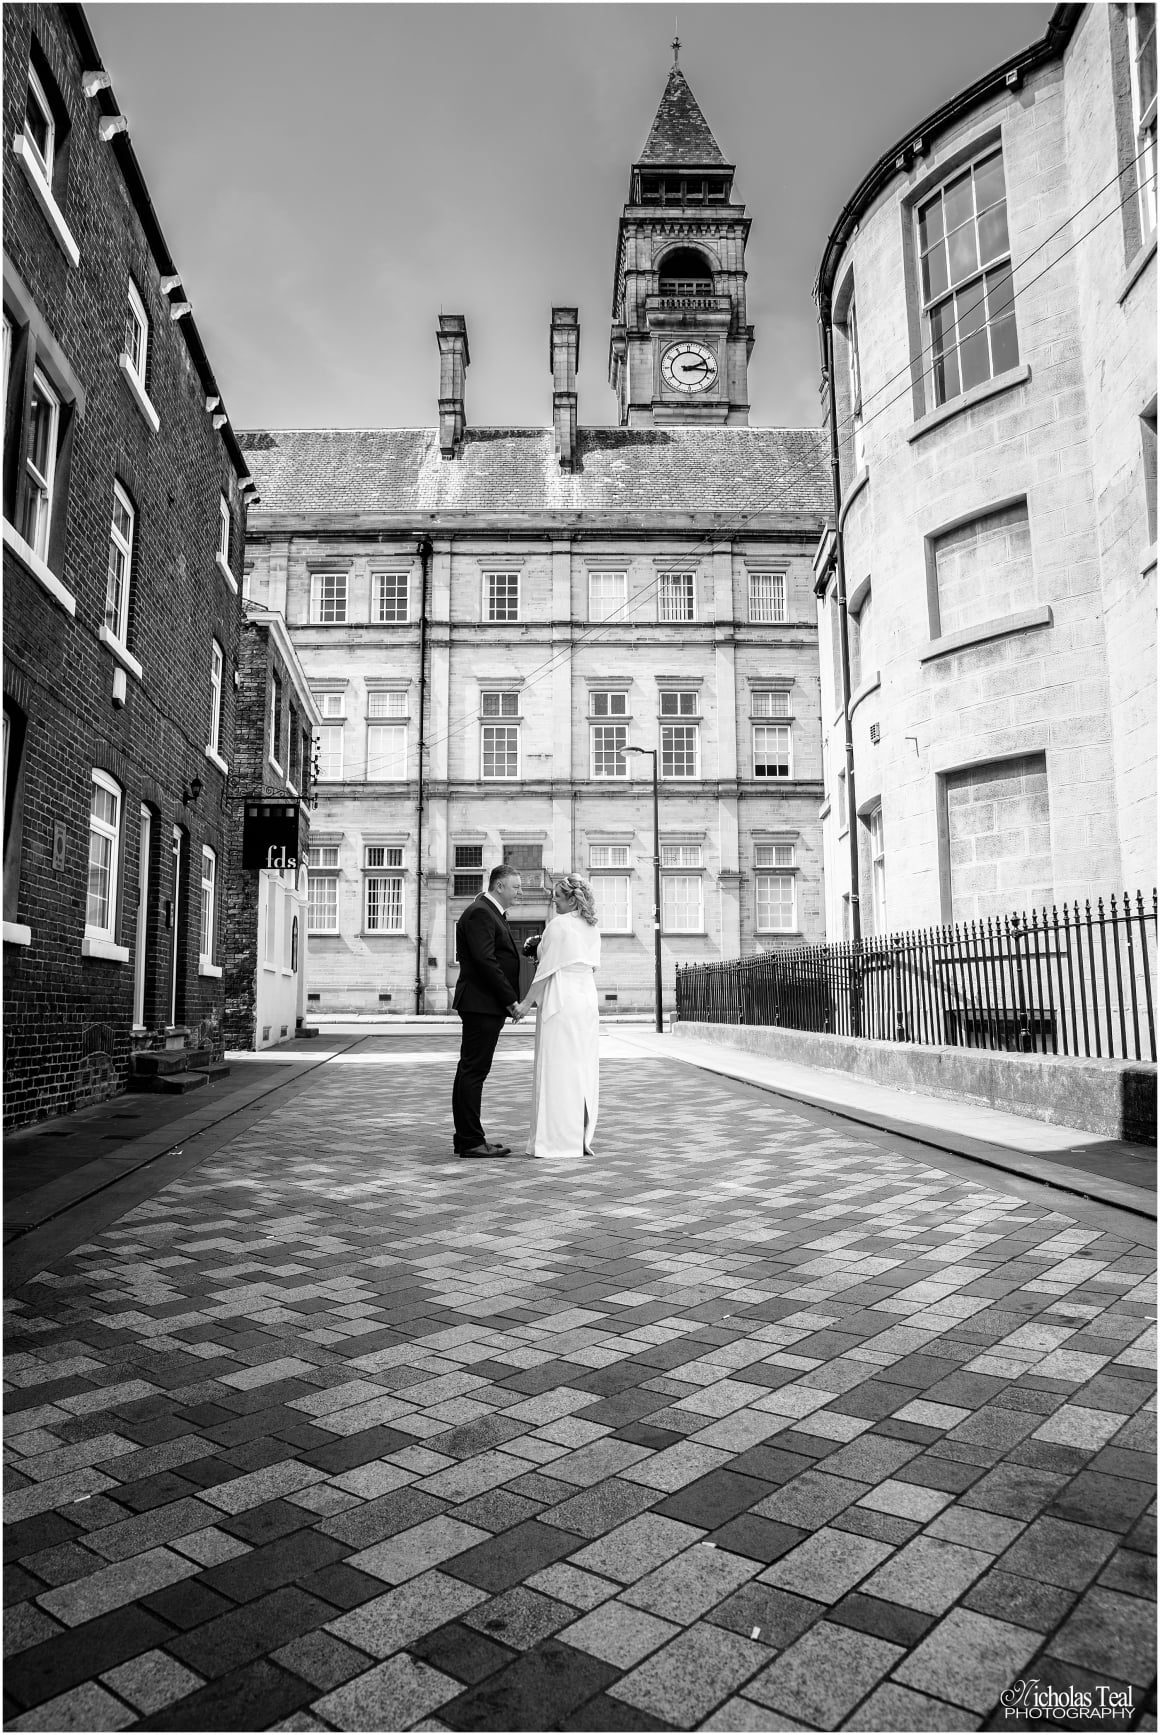 black and white picture of birde and groom in the street behind the old museum with the town hall clock tower in the back ground